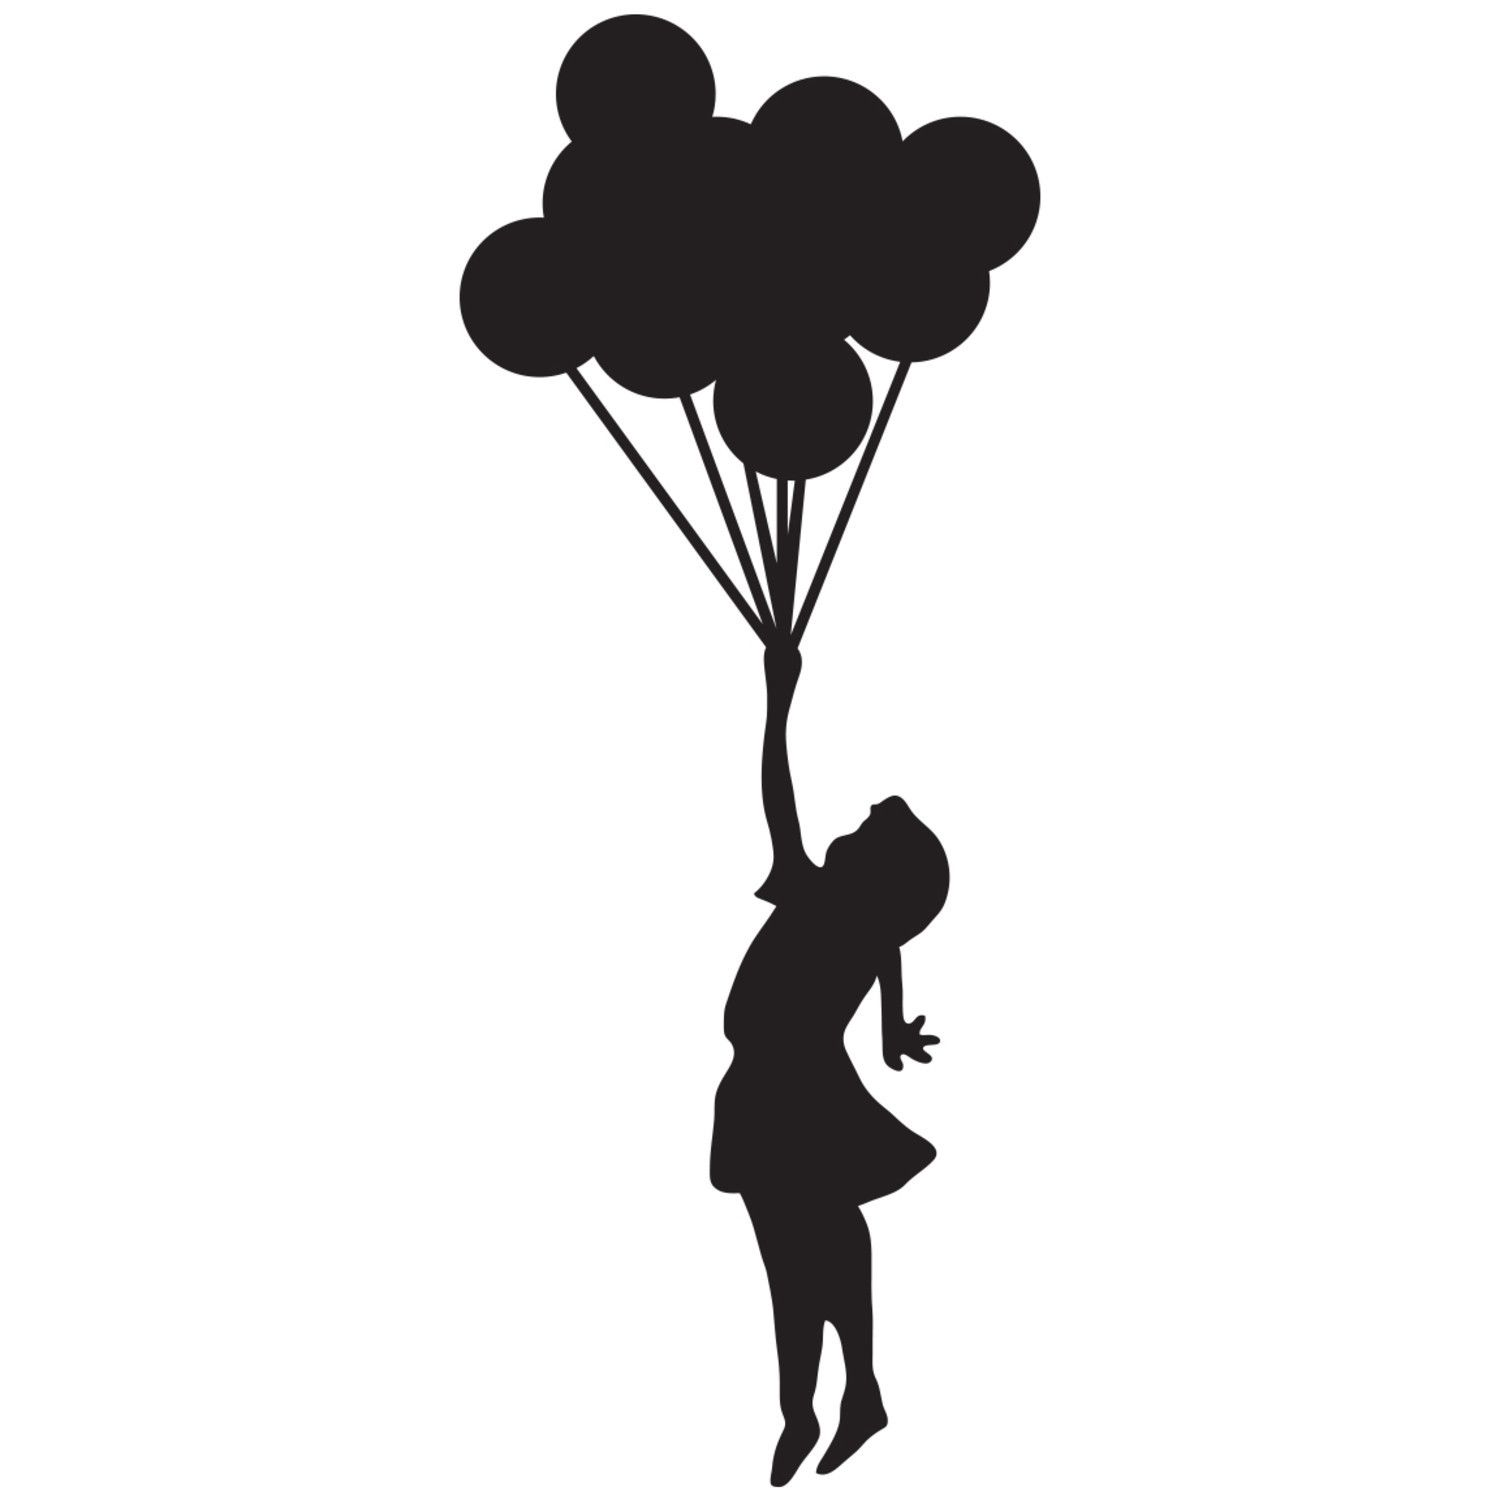 1500x1500 Umbrella and Silhouettes girl holding balloons silhouette Car